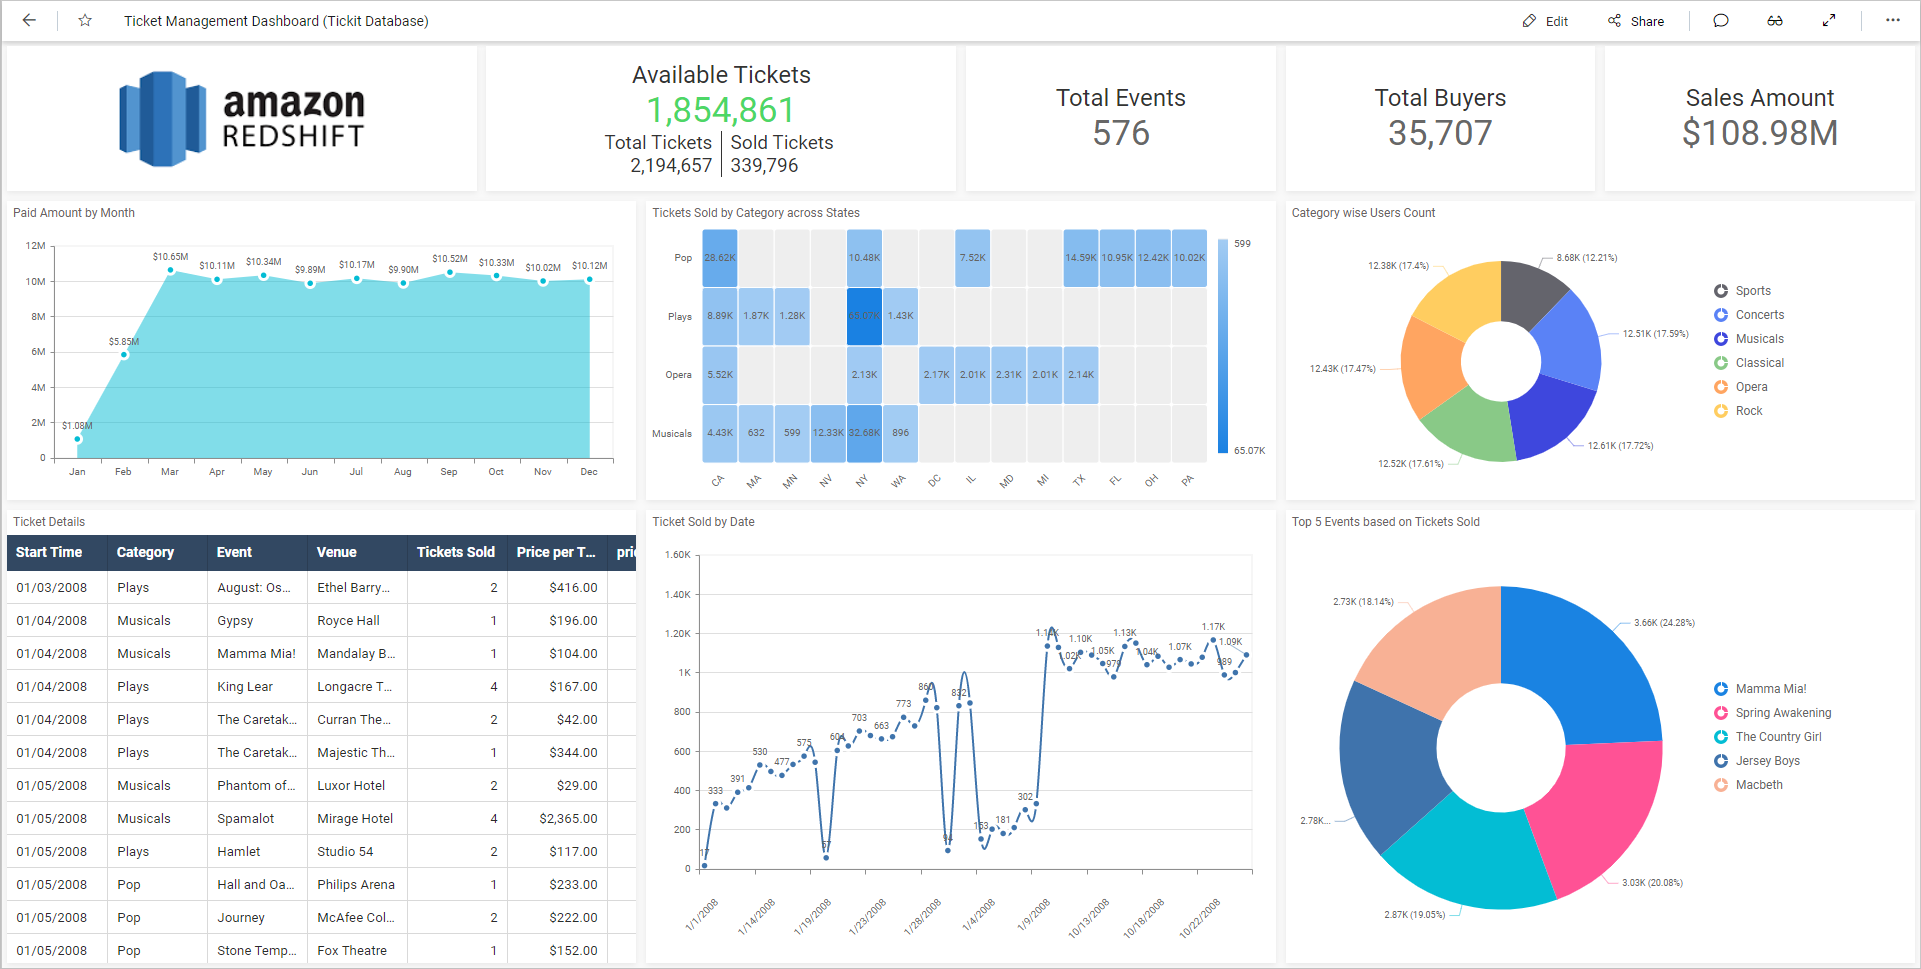 Ticket Management Dashboard